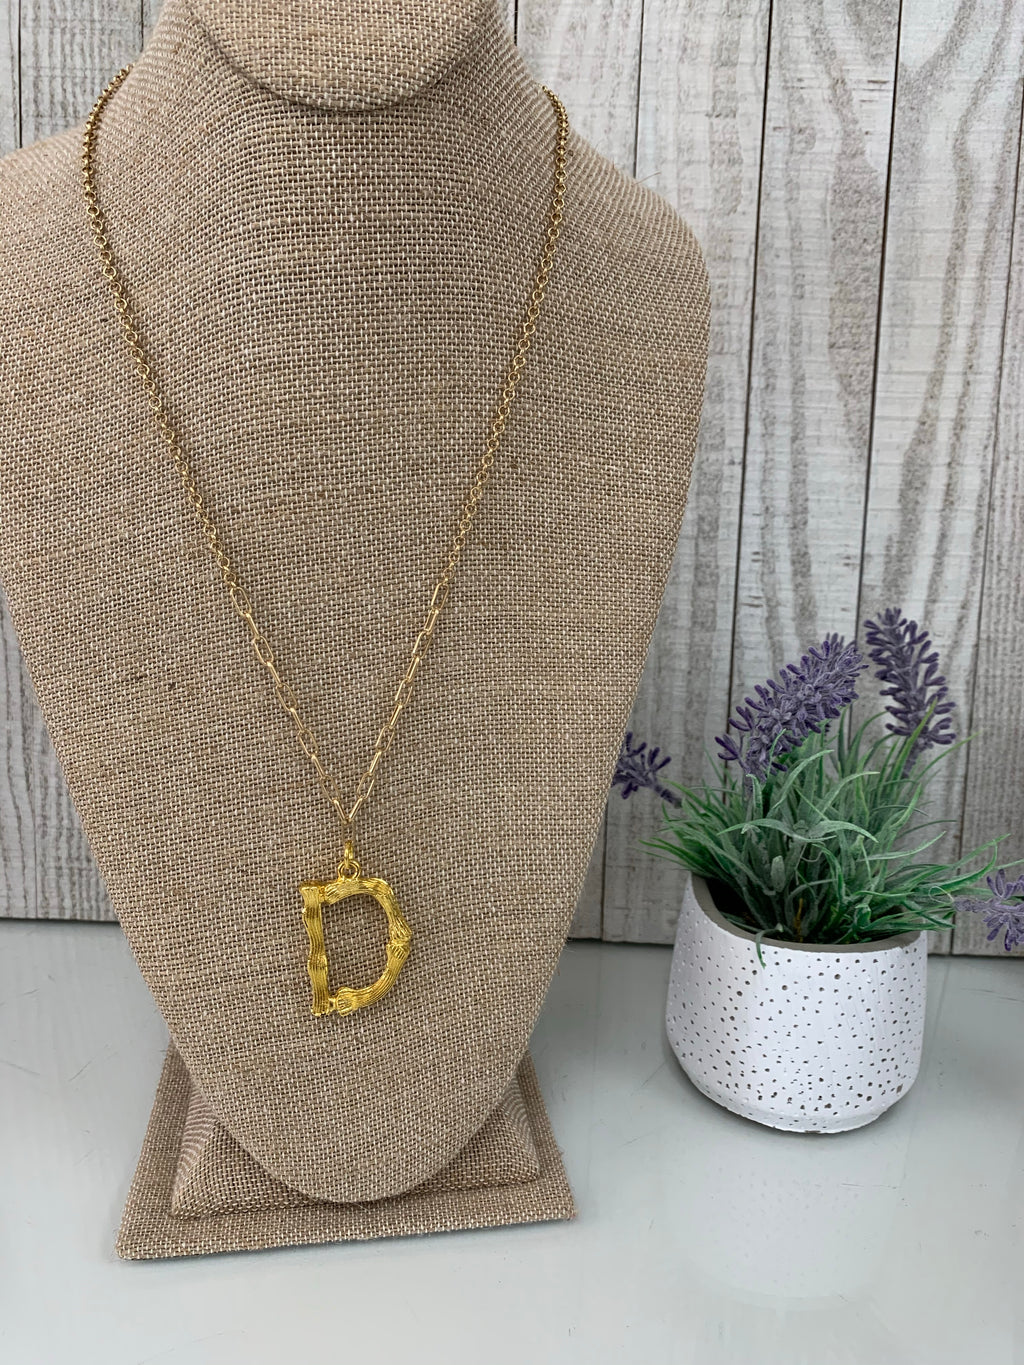 D' Branch Initial Pendant Necklace - Sissy Boutique